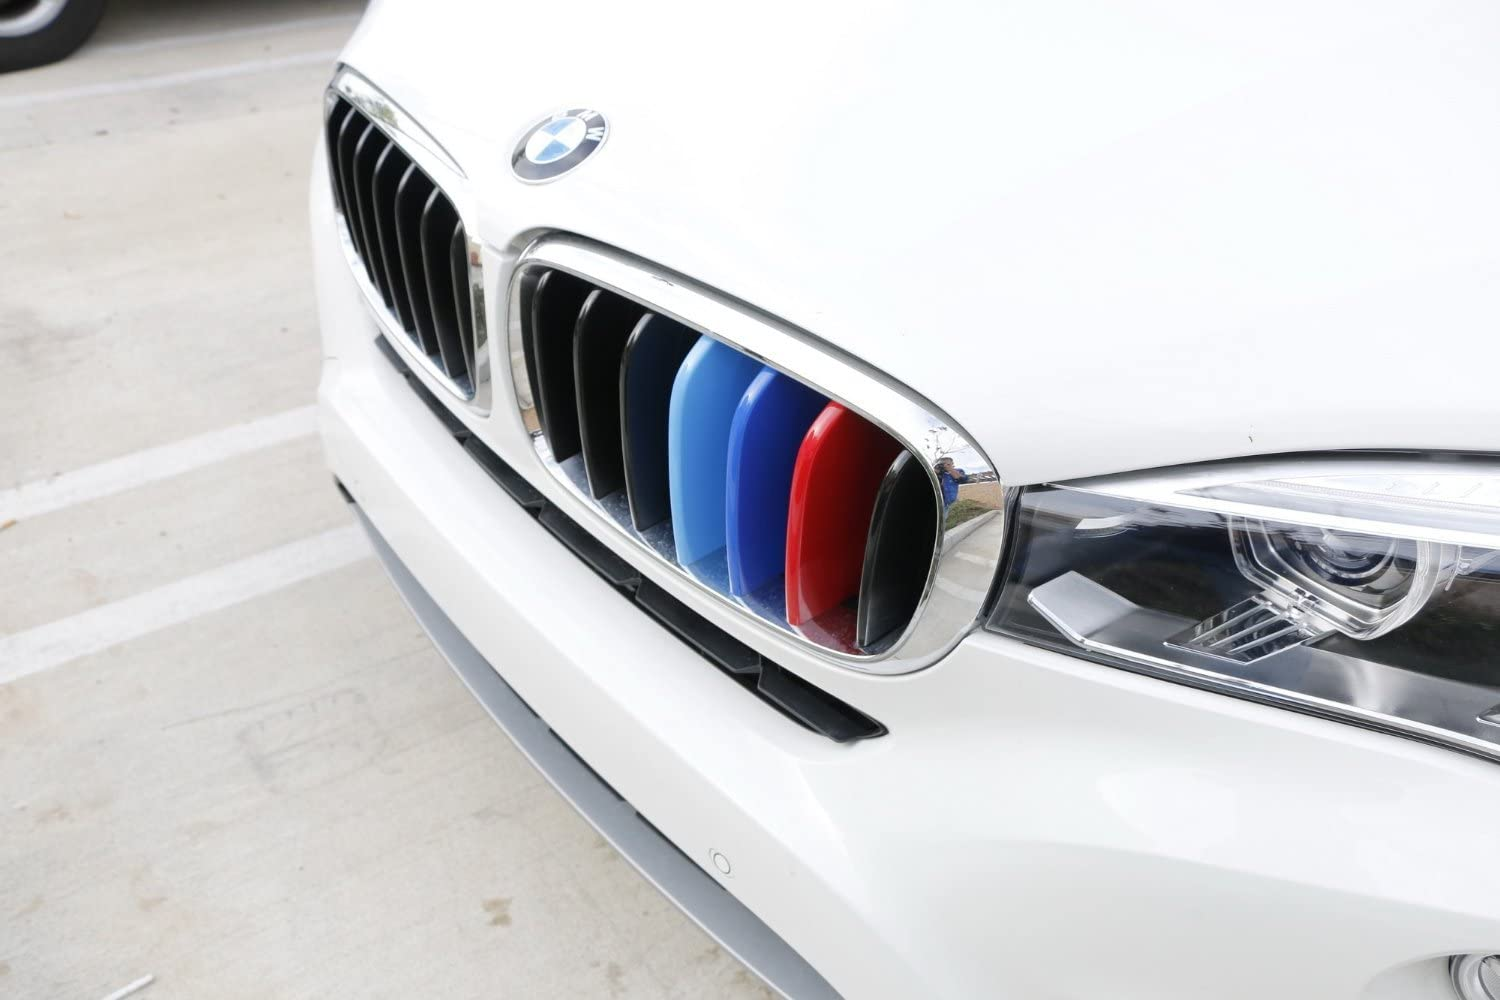 13-16 3 Series 11-Beam Standard Grill E-Bro Colored Exact Fit Grille Insert Trims For BMW